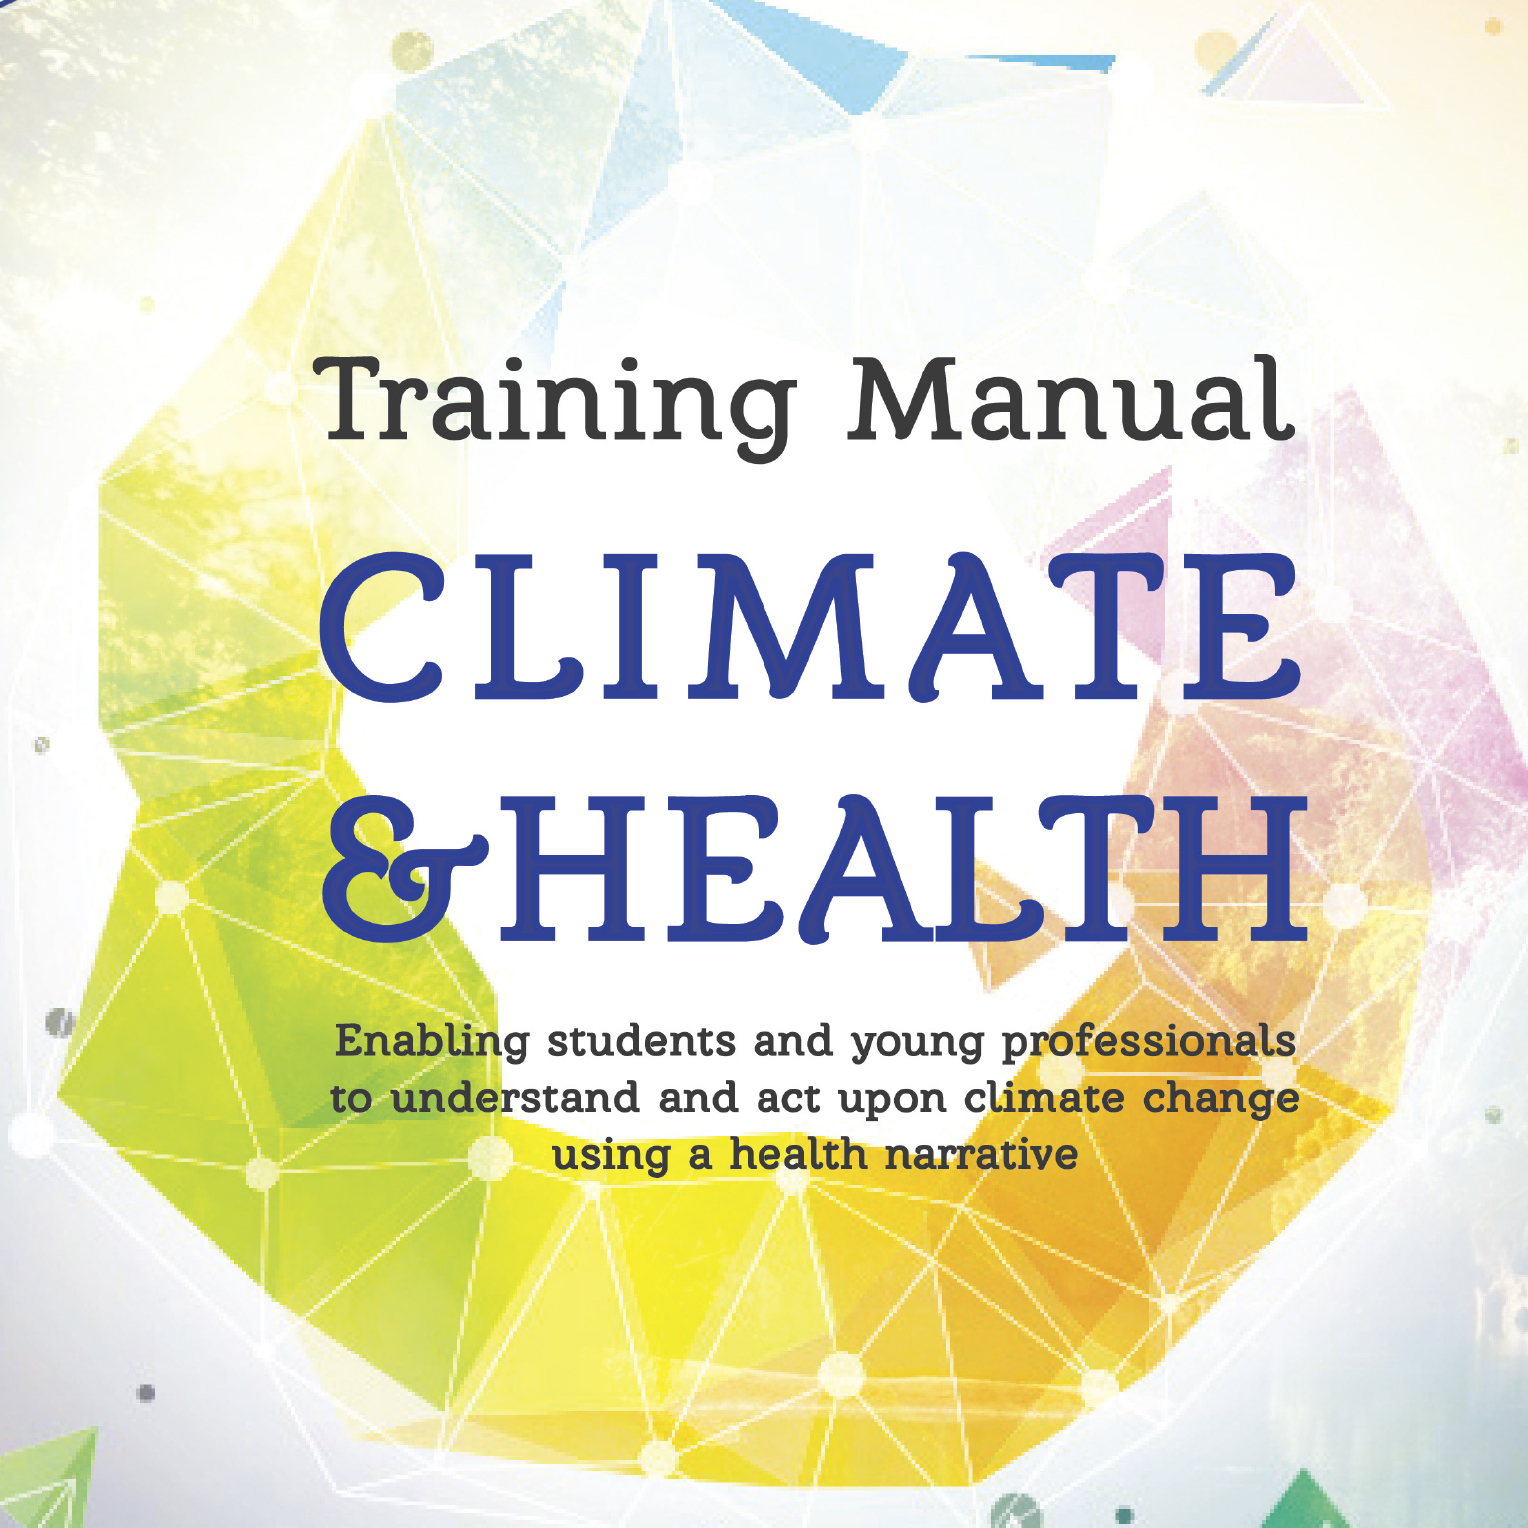 IFMSA Launches Training Manual on Climate and Health